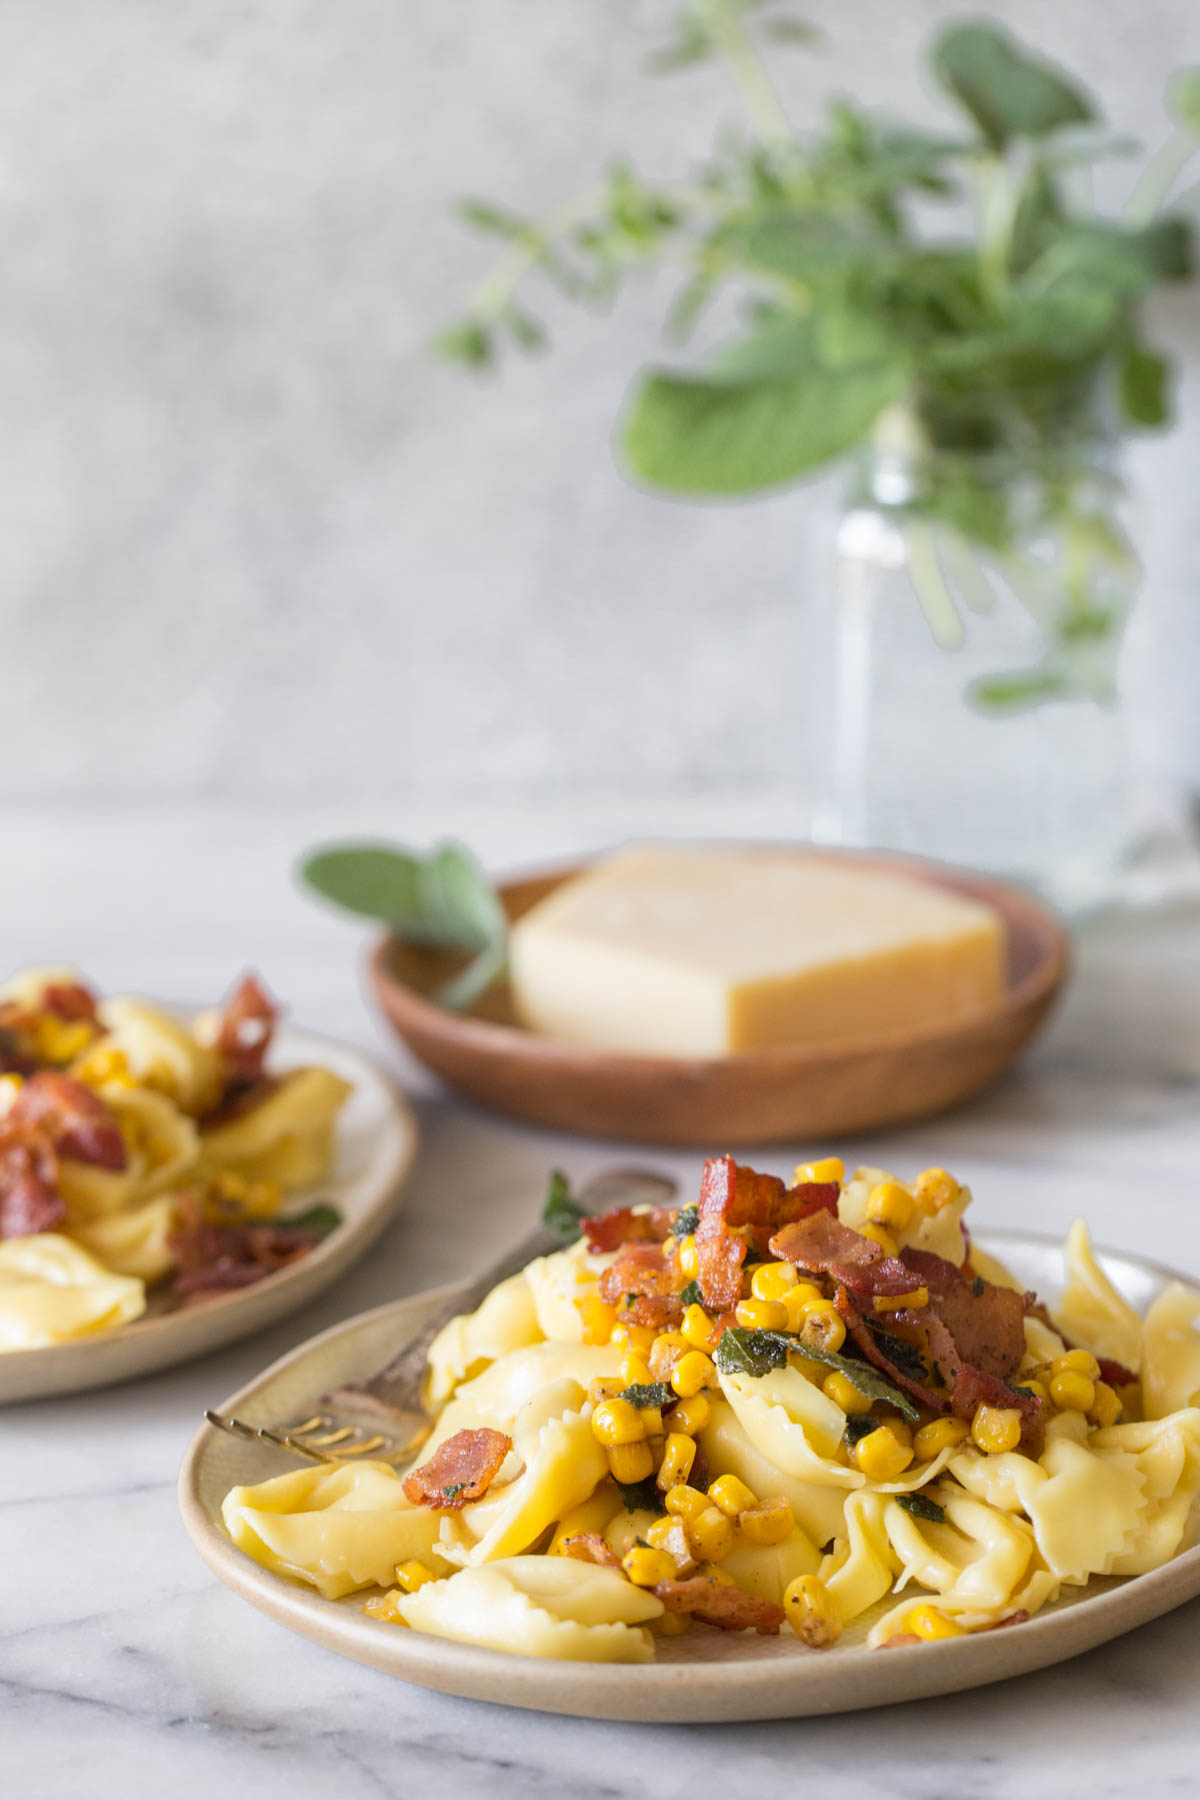 A plate of Creamy Tortellini With Bacon and Corn, and a wooden plate with a block of Parmesan cheese in the background.